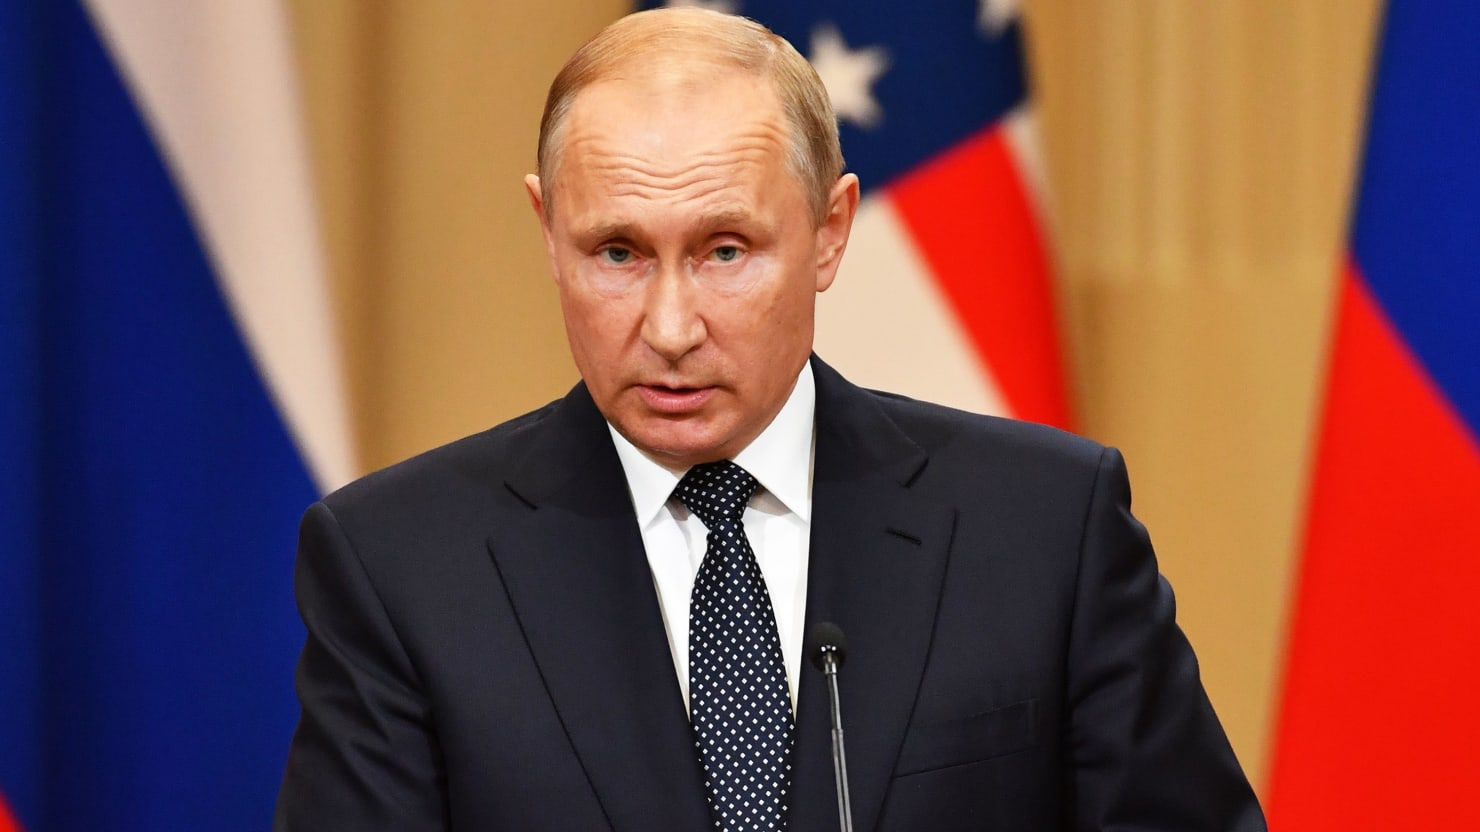 Putin is Positioned to Be President For Life...